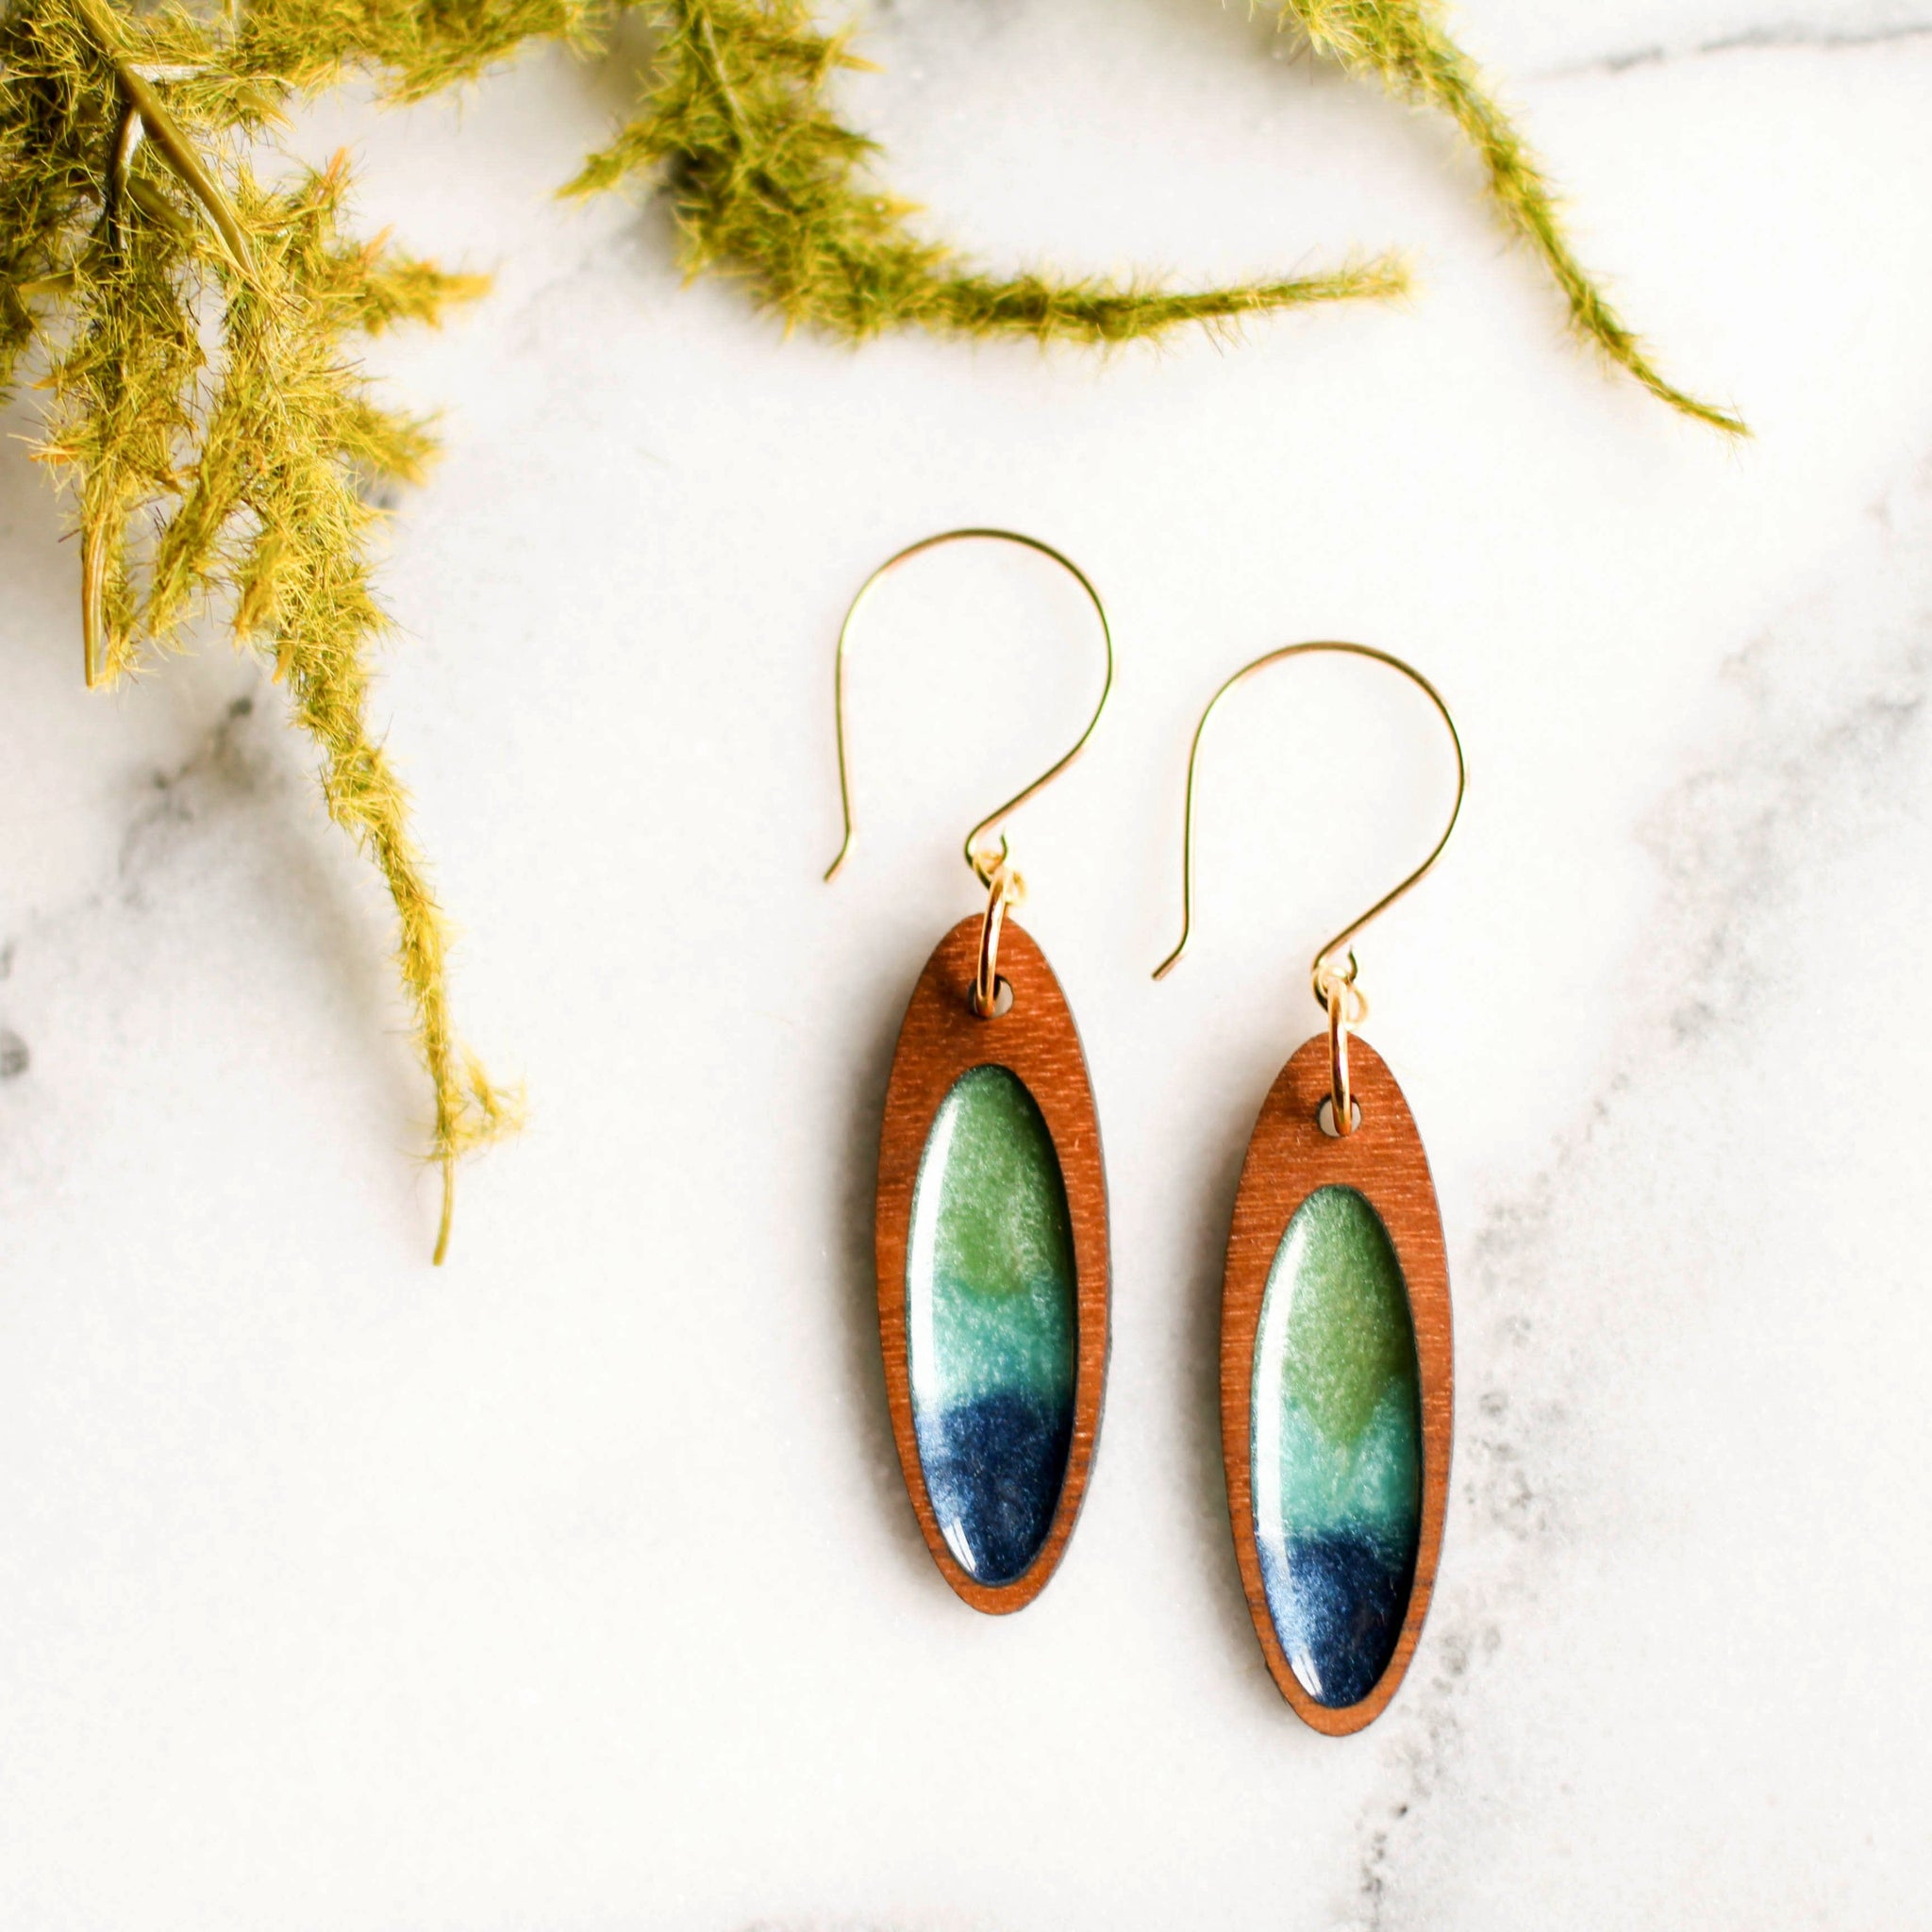 Pacific Blues Earrings - No Man's Land Artifacts